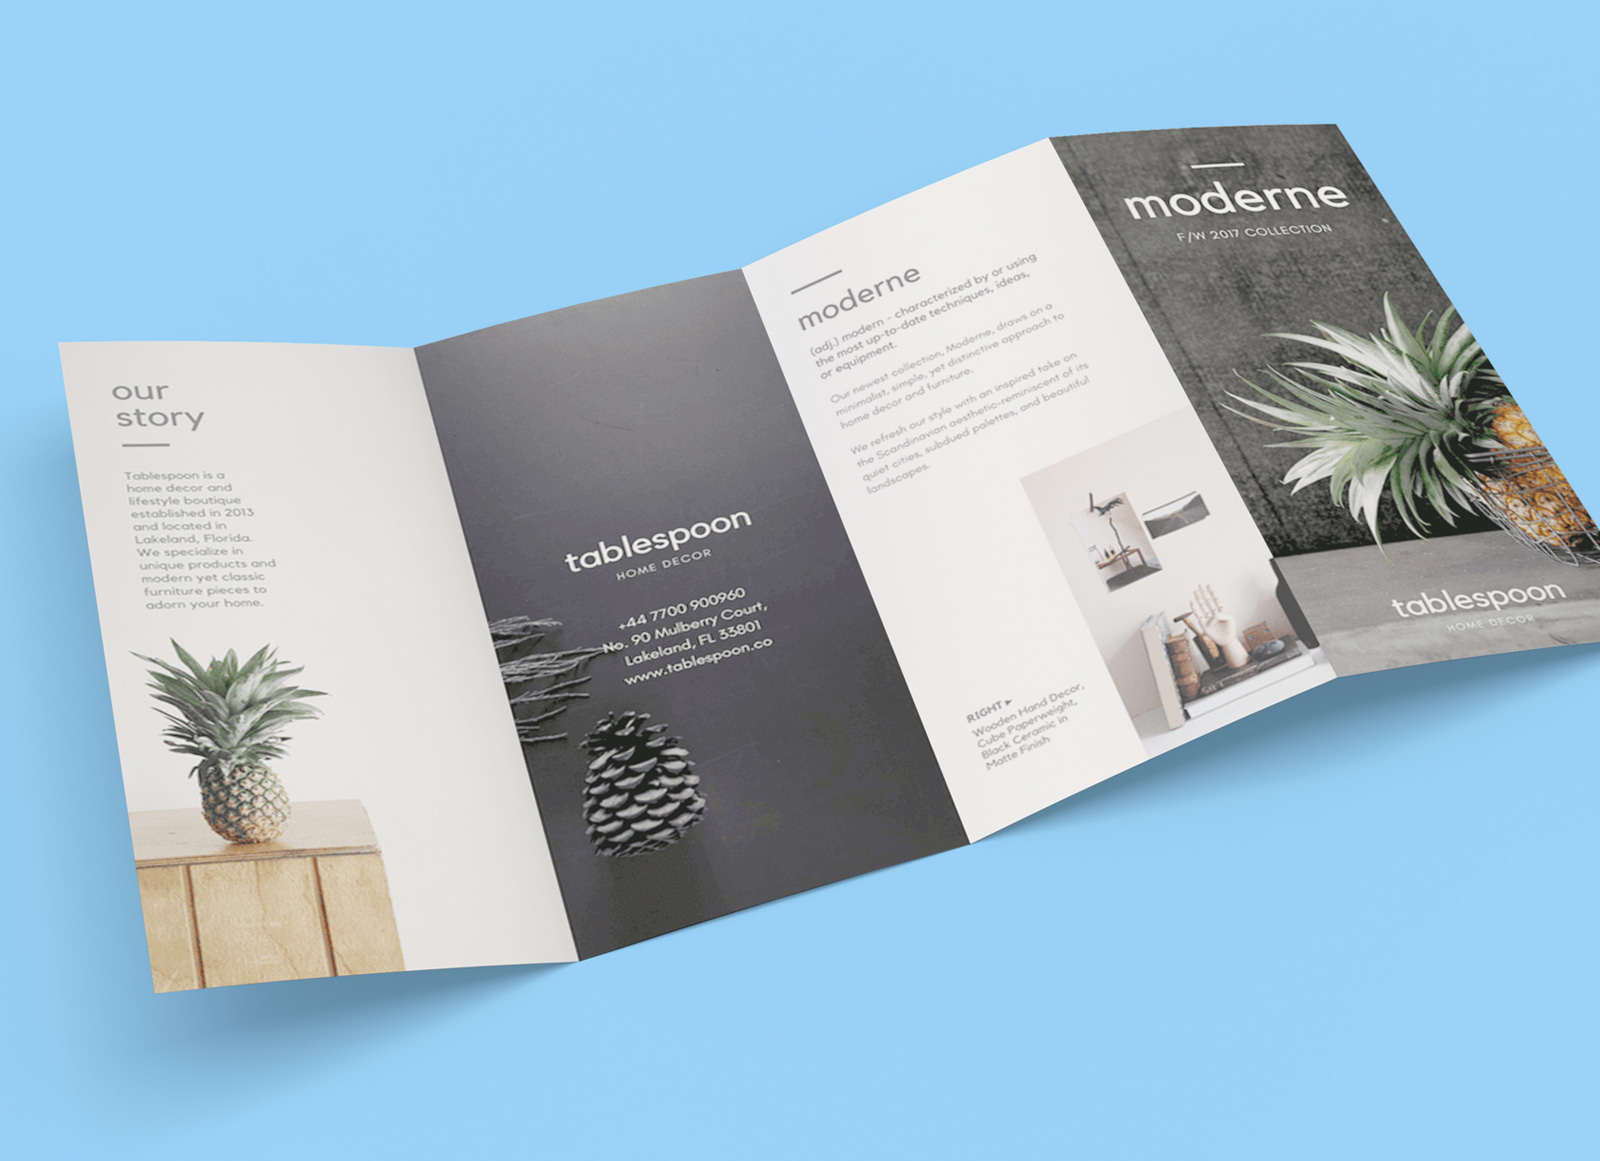 four fold brochure templates - free download - d-templates, Powerpoint templates